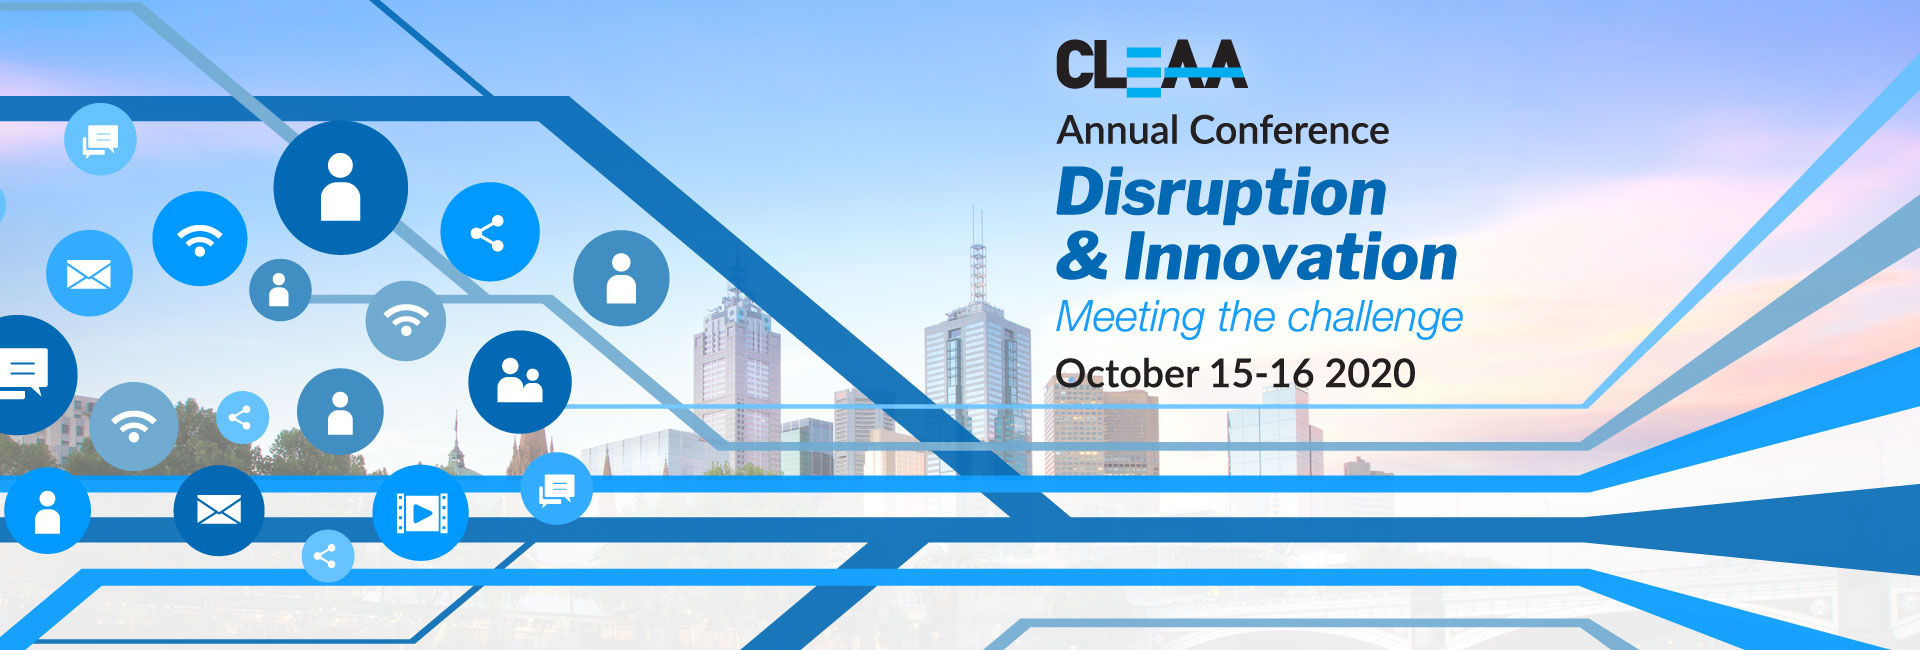 innovation-disruption-CLEAA-conference-2020